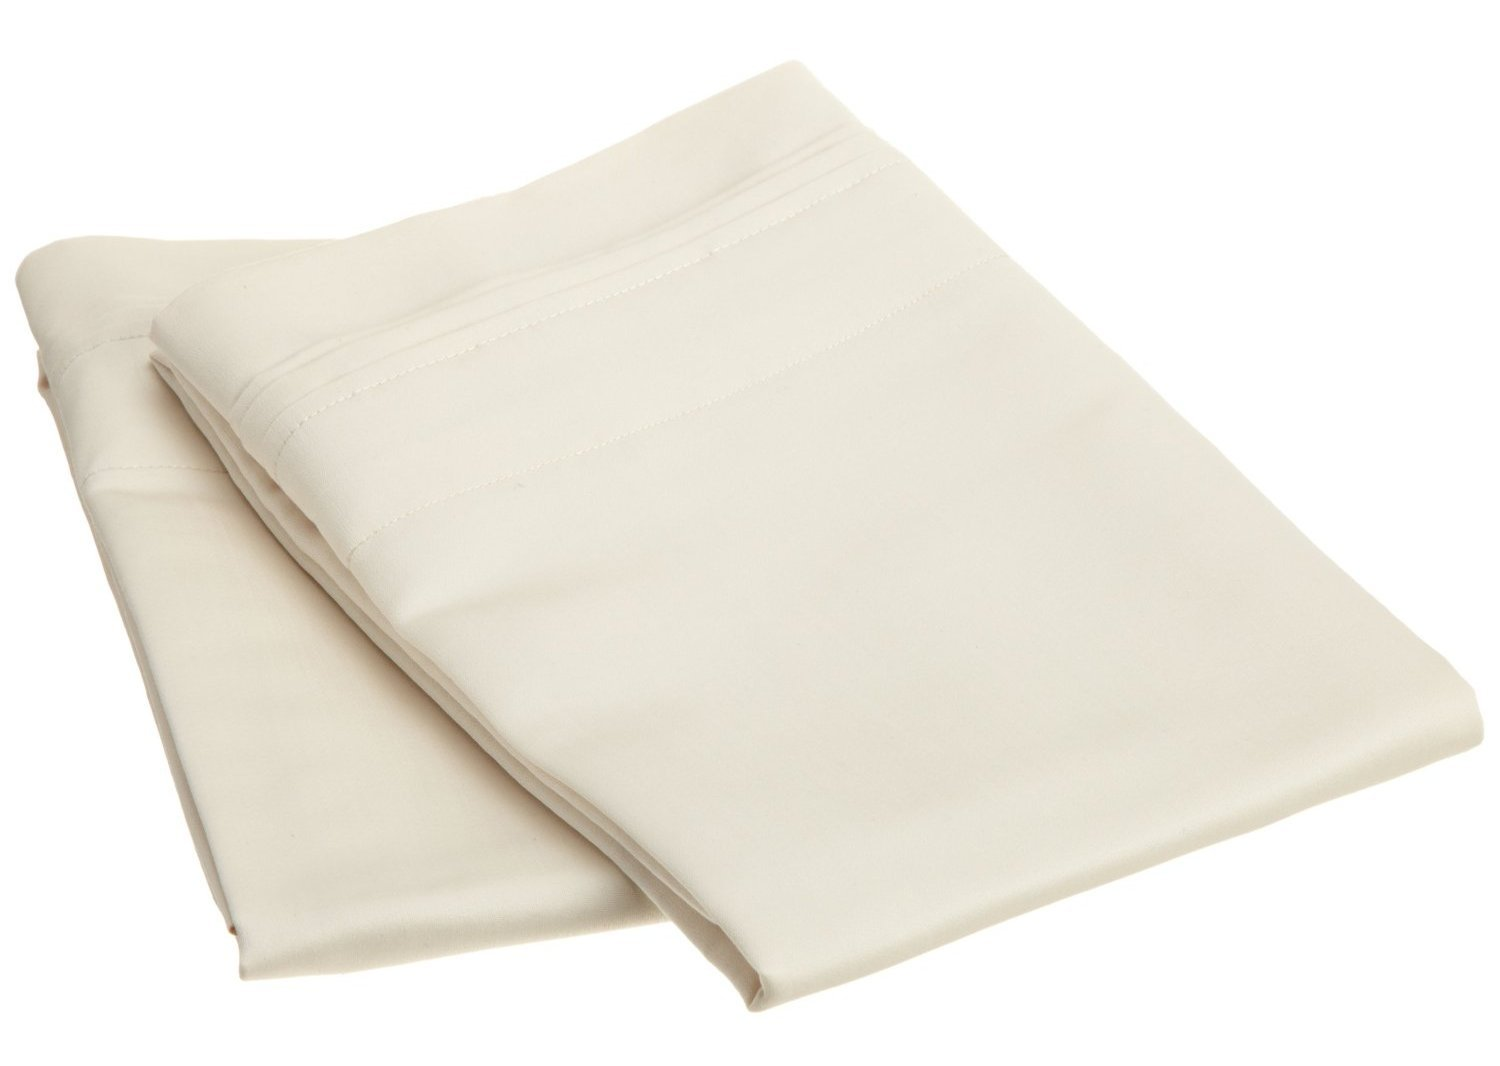 1000 Thread Count 100% Premium Long-Staple Combed Cotton, Single Ply, King 2-Piece Pillowcase Set, Solid, White Luxor Treasures FBA_1000KGPC SLWH